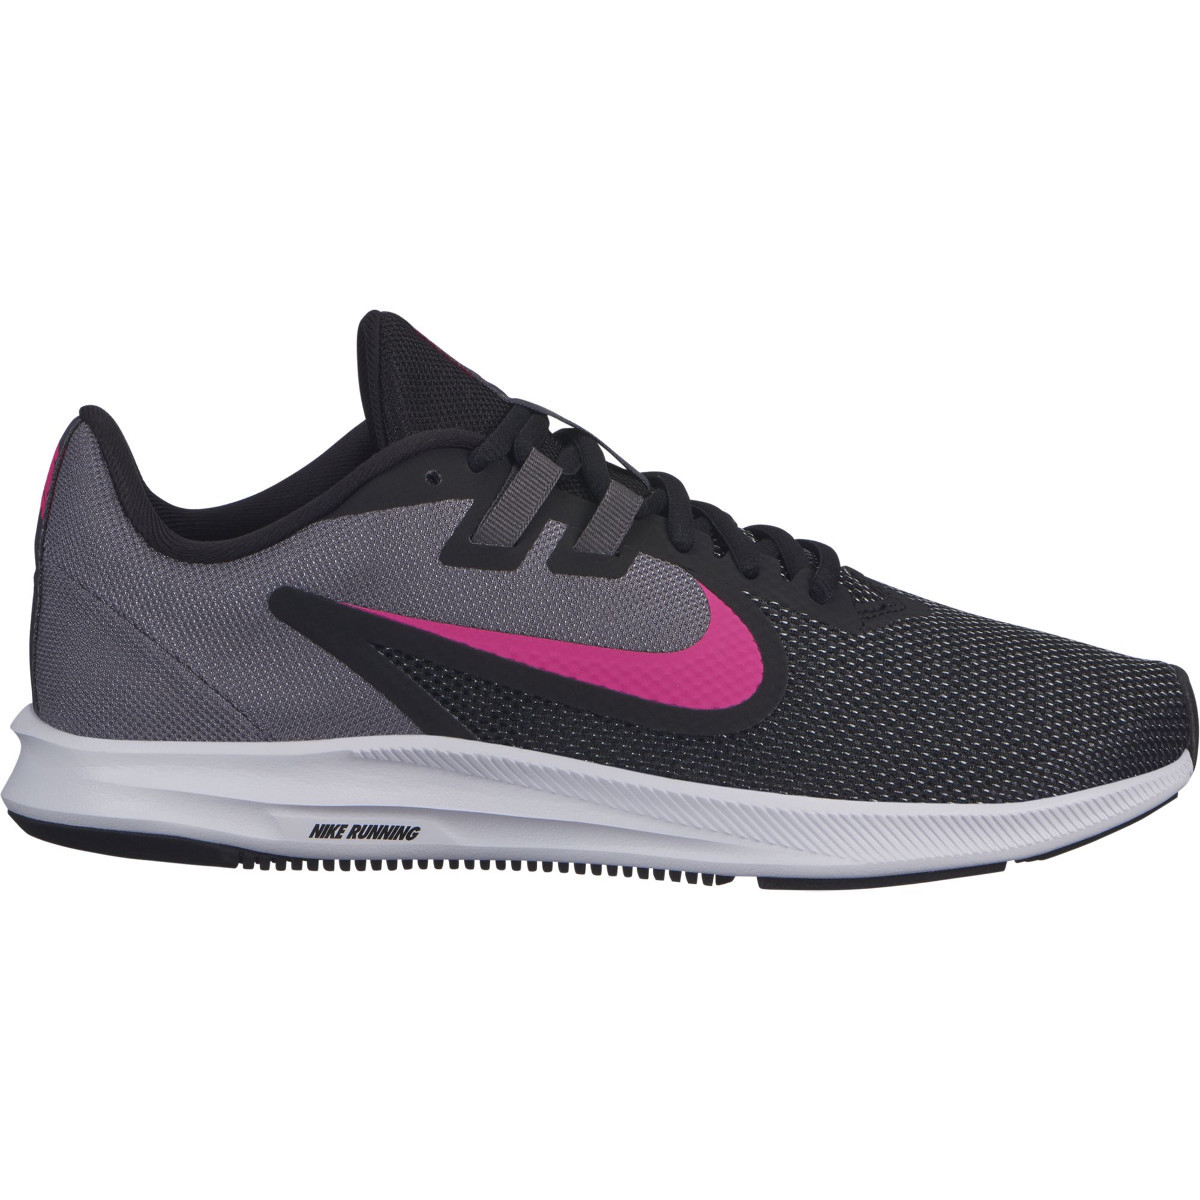 NIKE Кроссовки женские DOWNSHIFTER 9, black, grey, pink